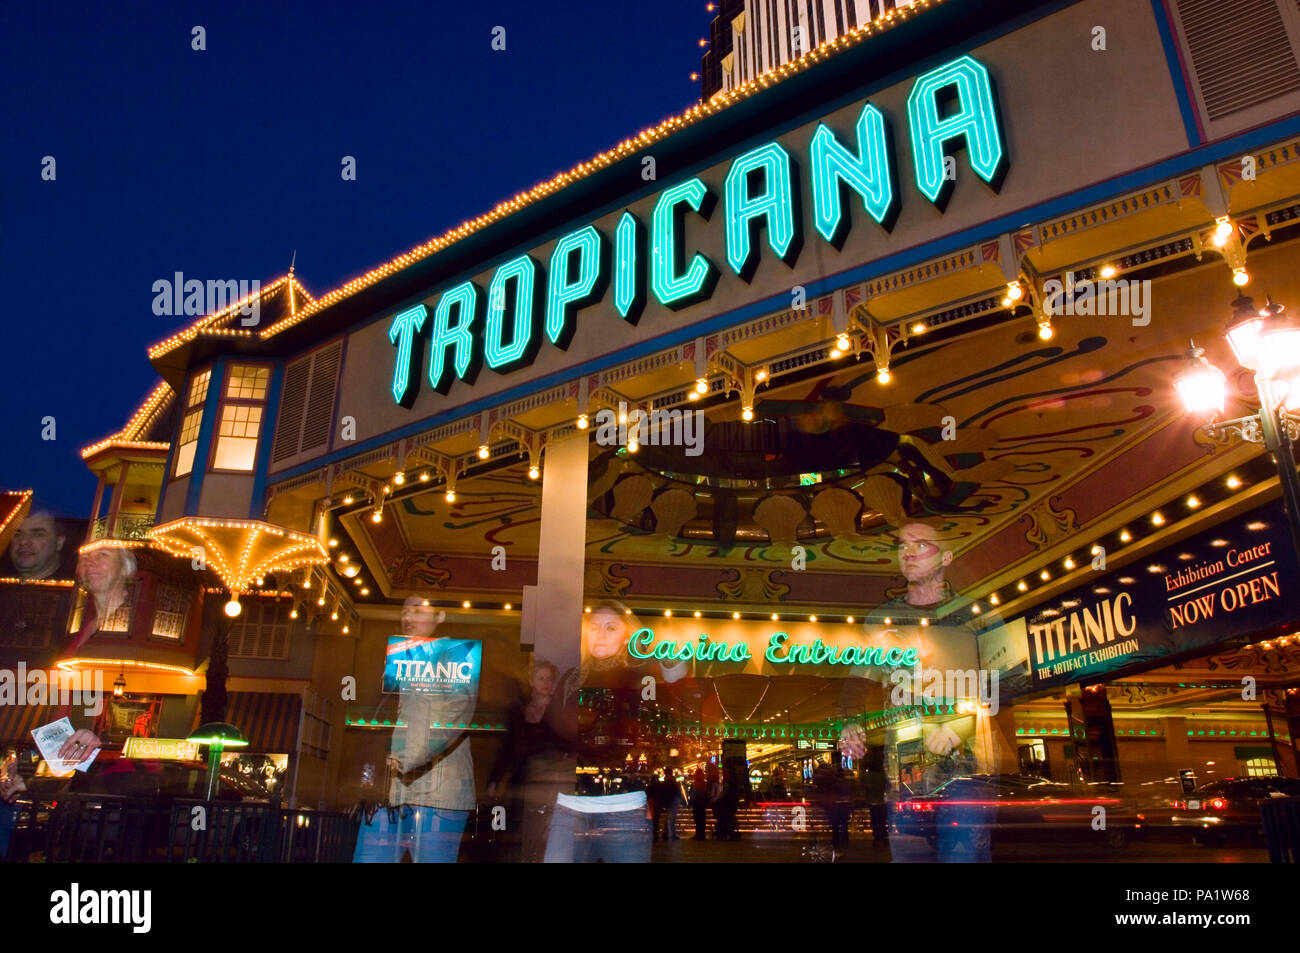 The Tropicana, which   opened in April 1957 has a long and colorful history with mob ties.    Suspicions were raised immediately over links to organiz - Stock Image